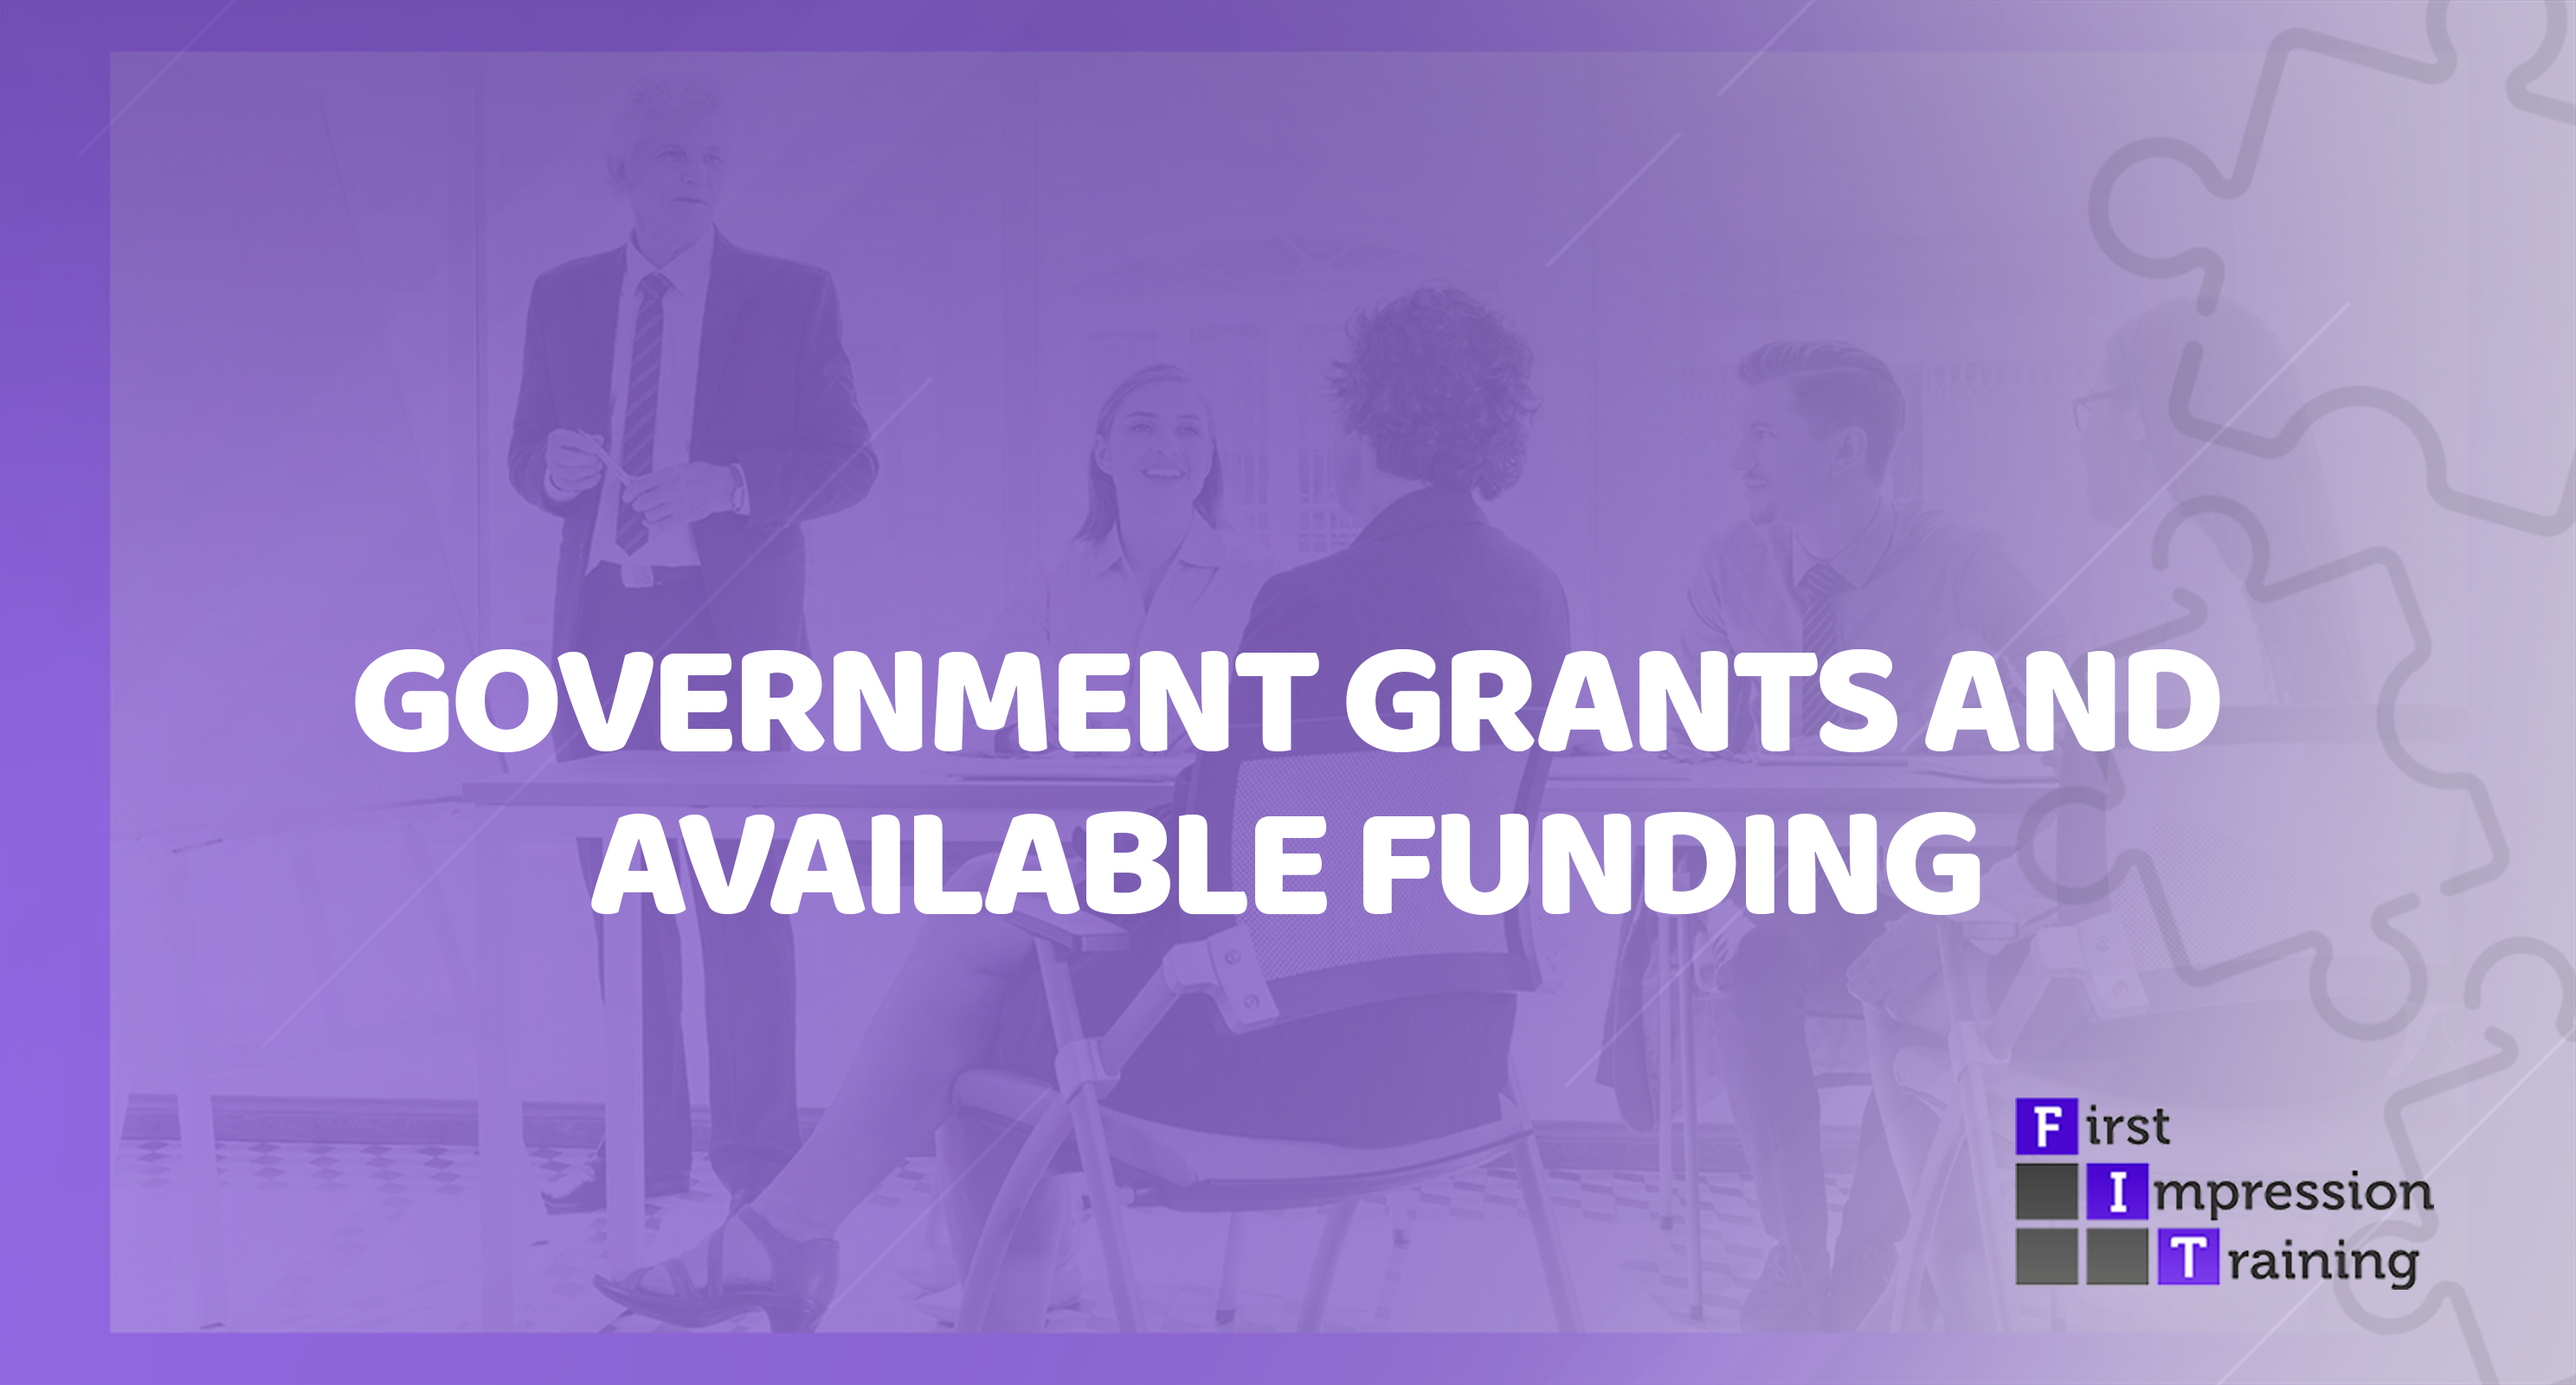 Are there any government grants or funding available for staff training / customer service training?